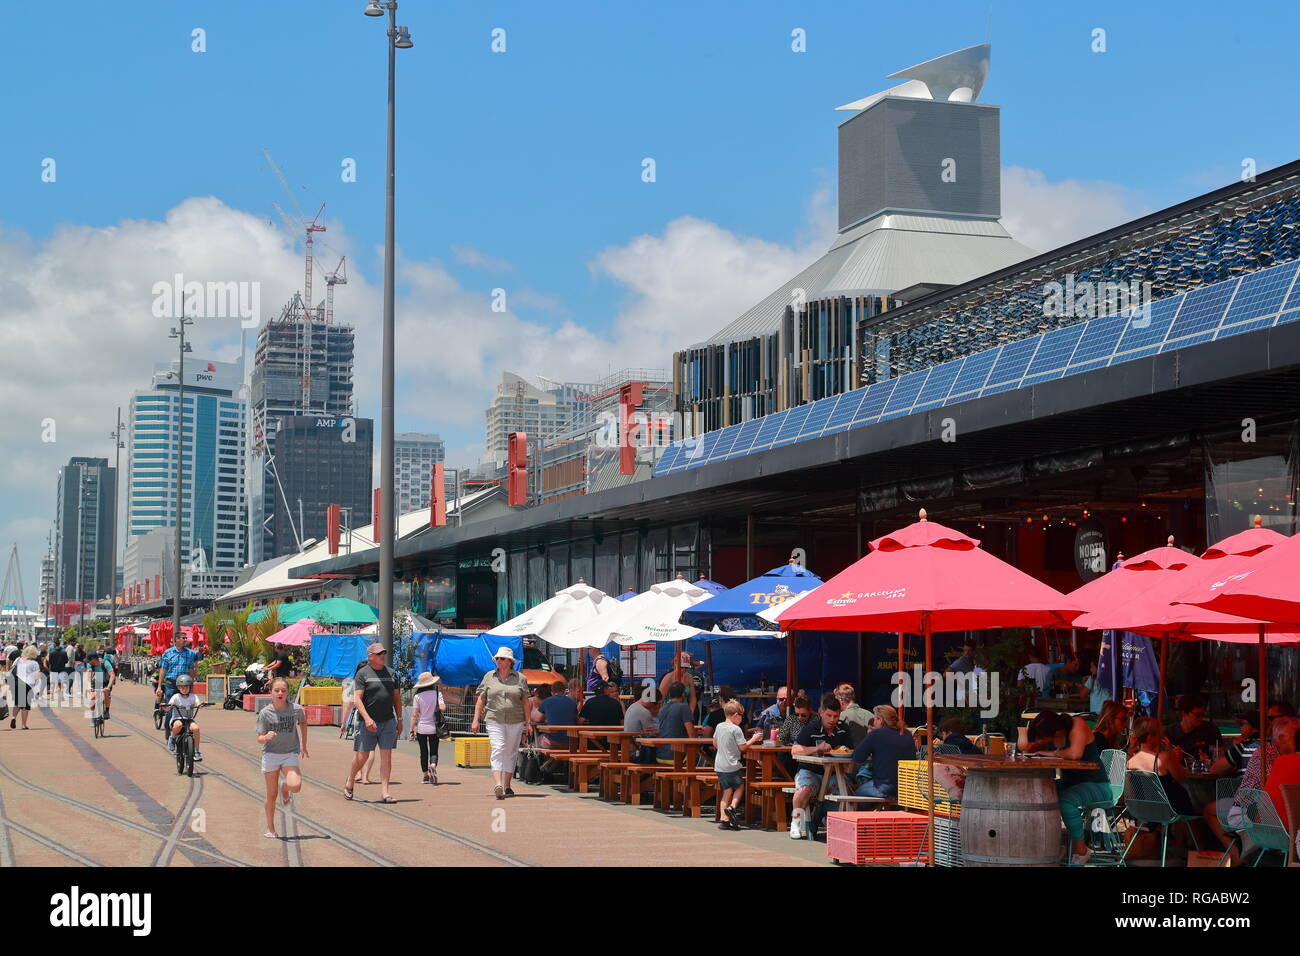 Locals and visitors alike dining in the restaurants in Auckland harbour, New Zealand - Stock Image